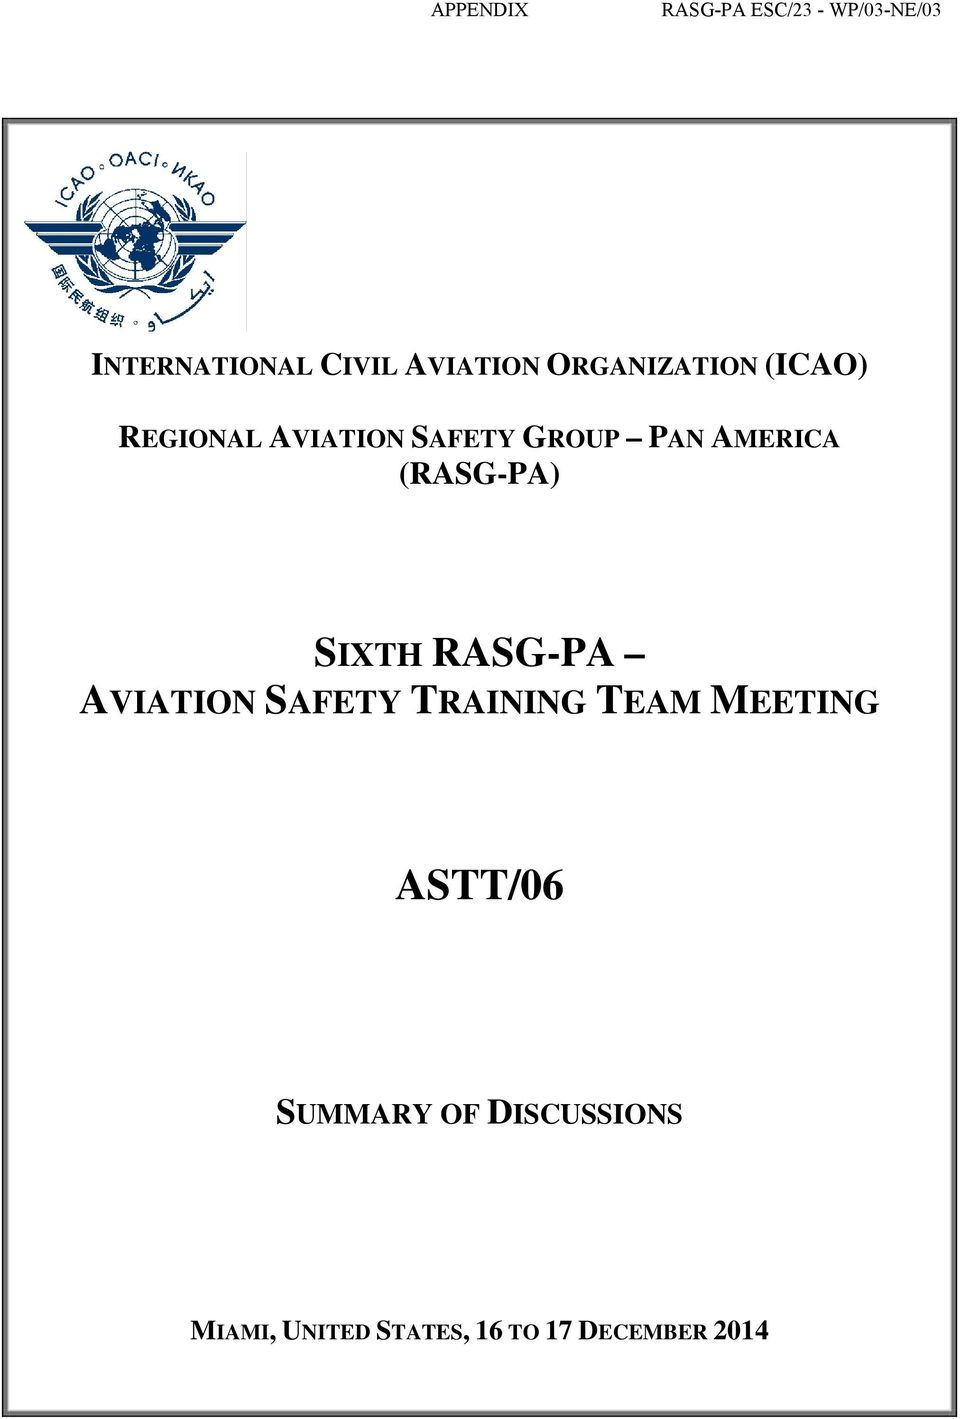 (RASG-PA) SIXTH RASG-PA AVIATION SAFETY TRAINING TEAM MEETING